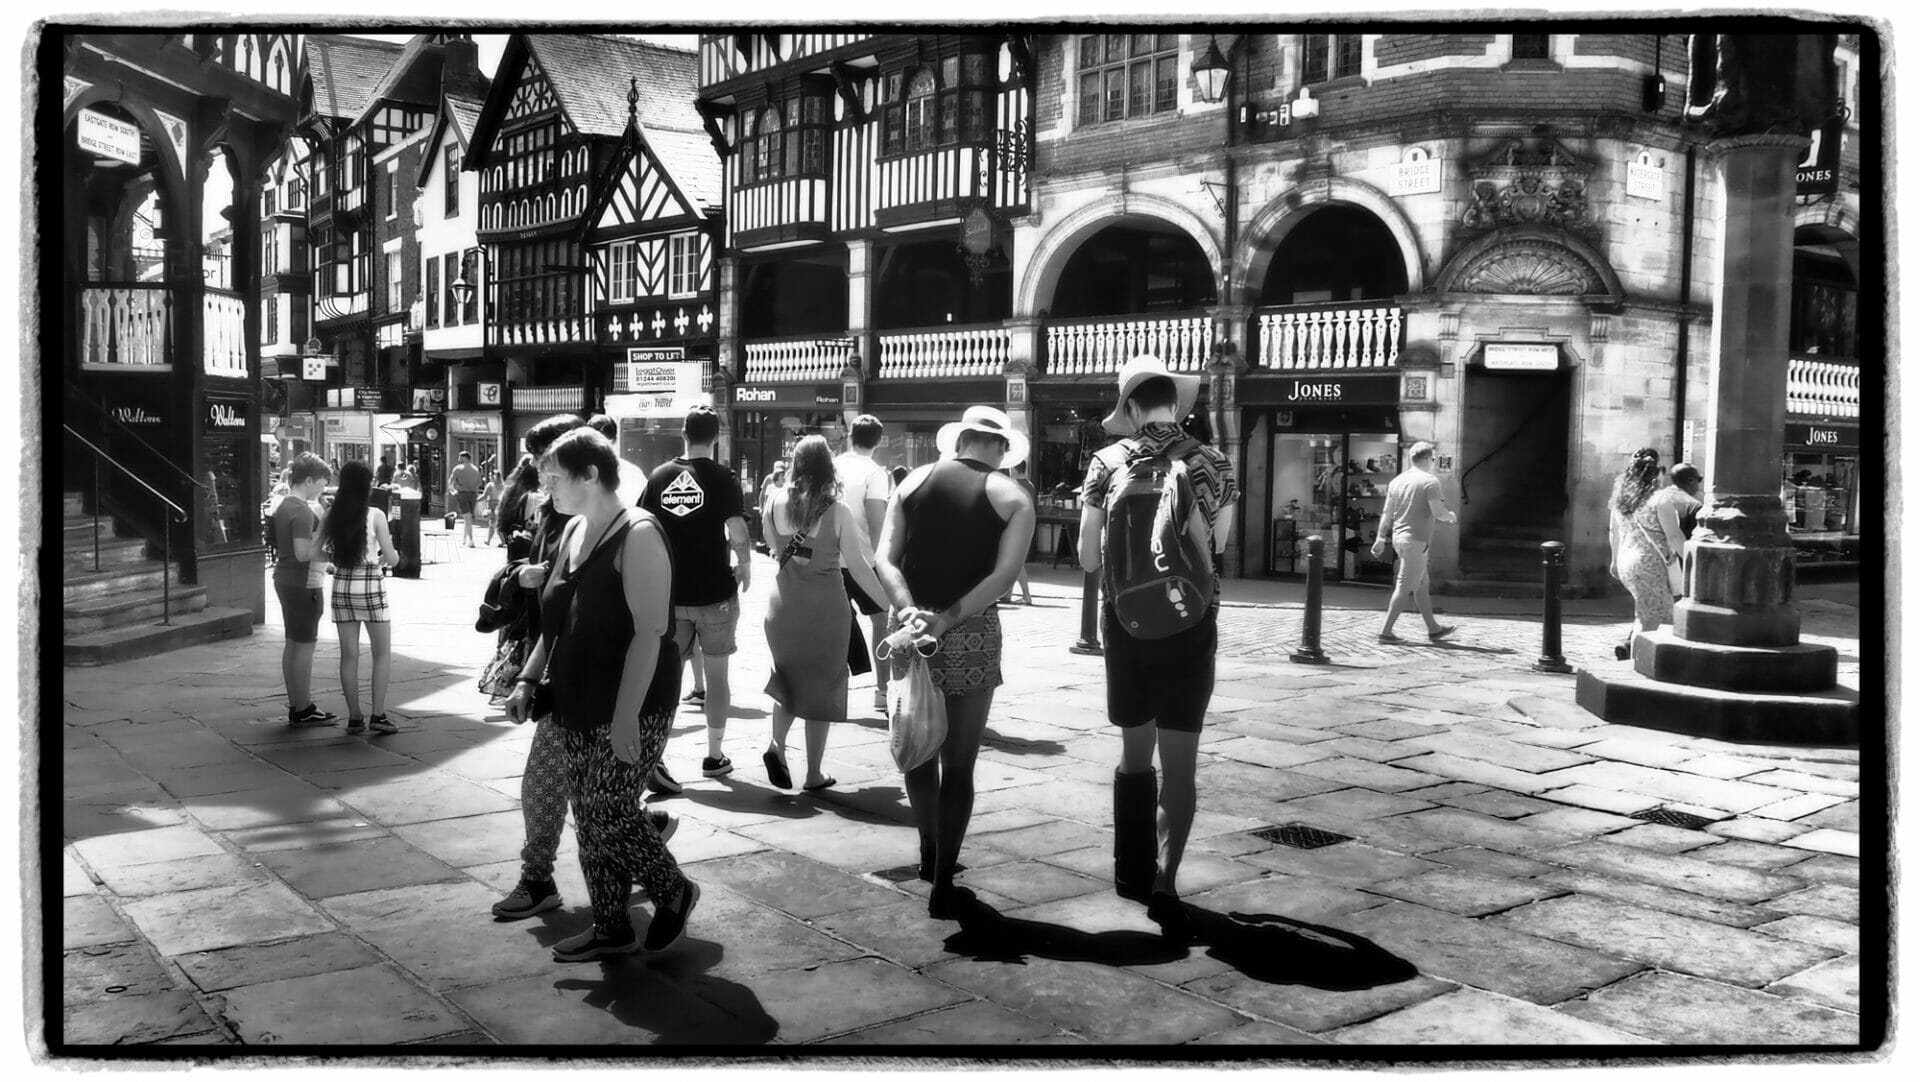 Black and White Photo of a group of people in the streets of Chester. The photos was taken on the Chester Walls - A Photographic Adventure with Welshot